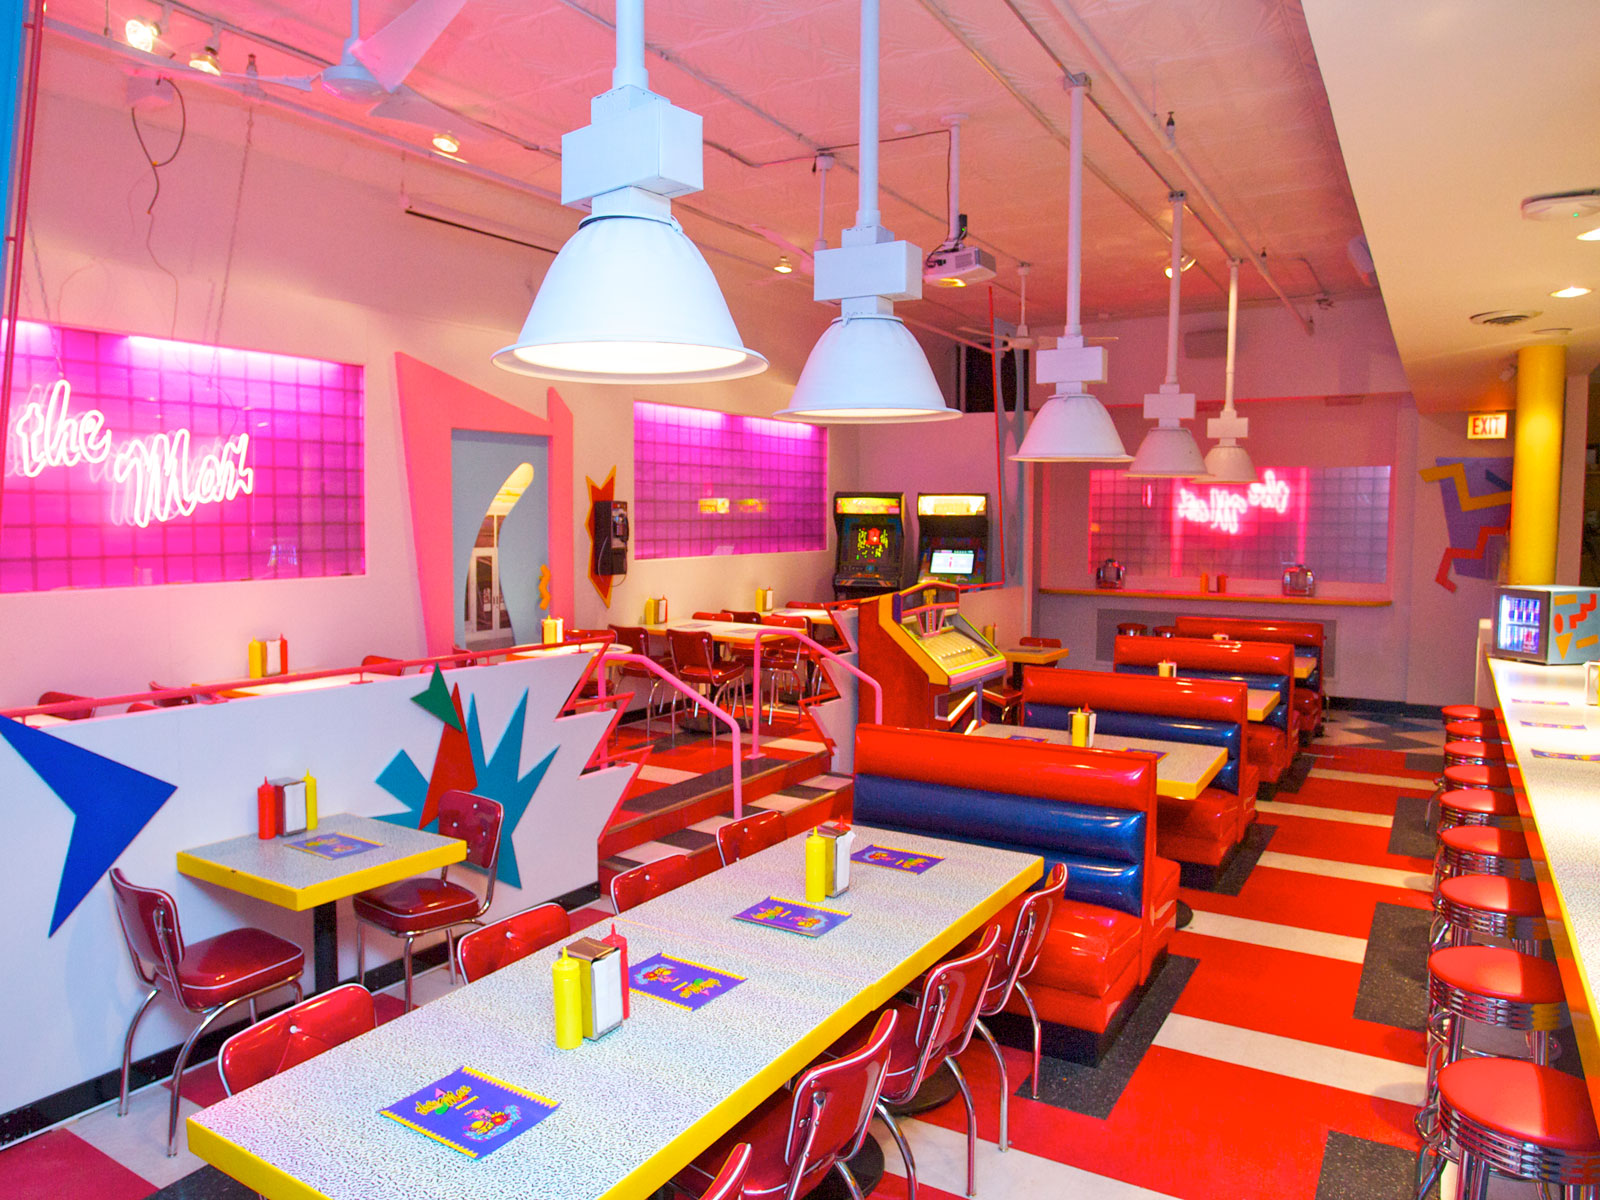 Saved by the Bell Pop-Up Diner Is Coming to L.A.